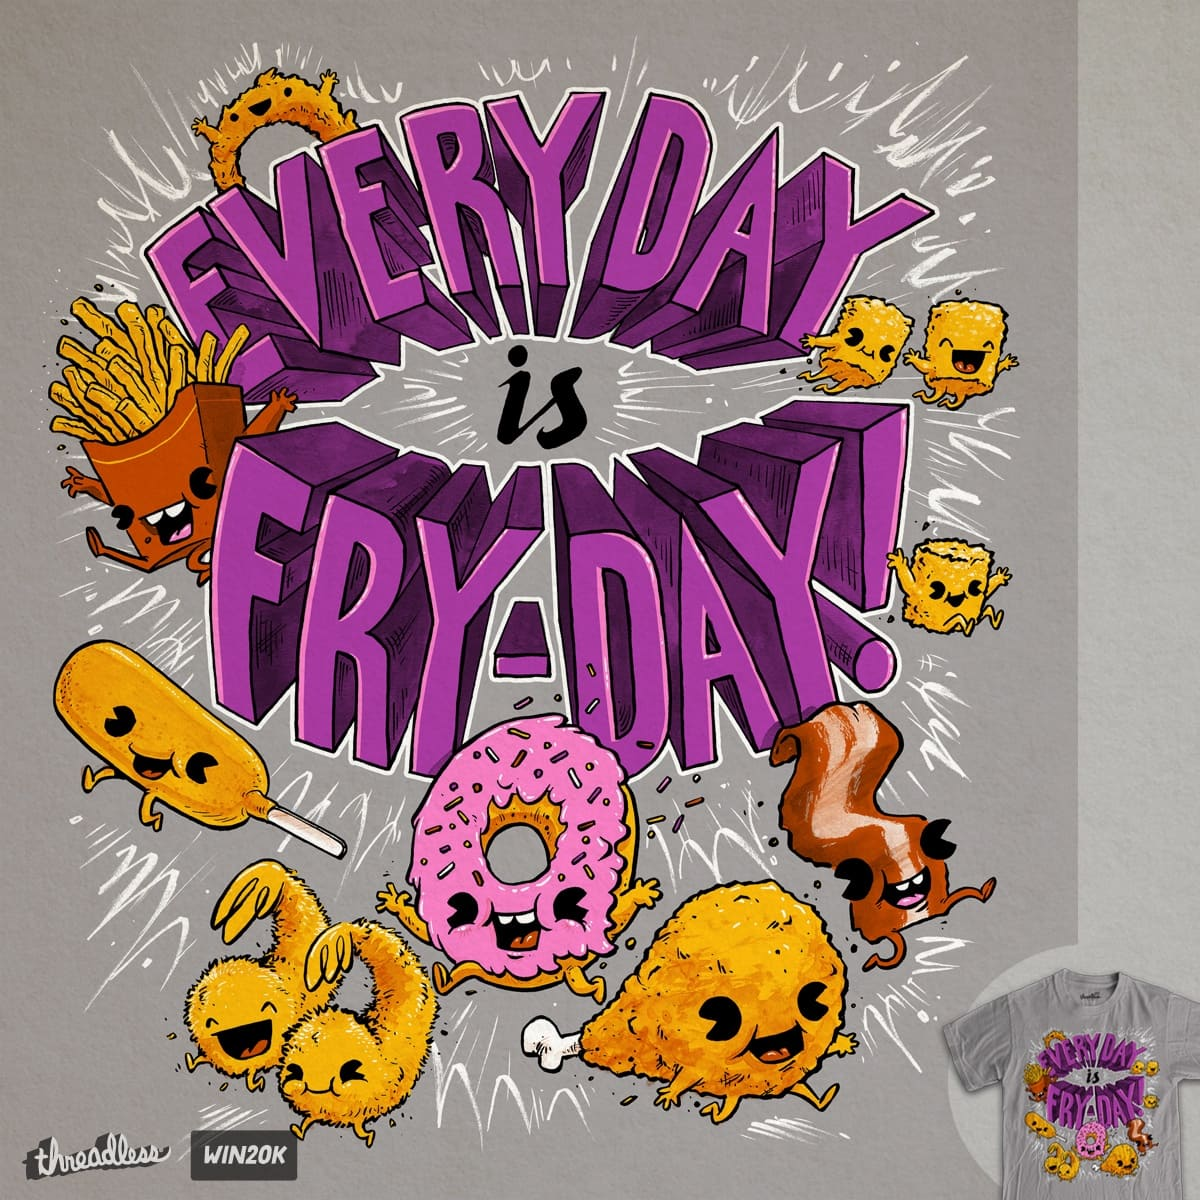 It's Fryday! by briancook on Threadless